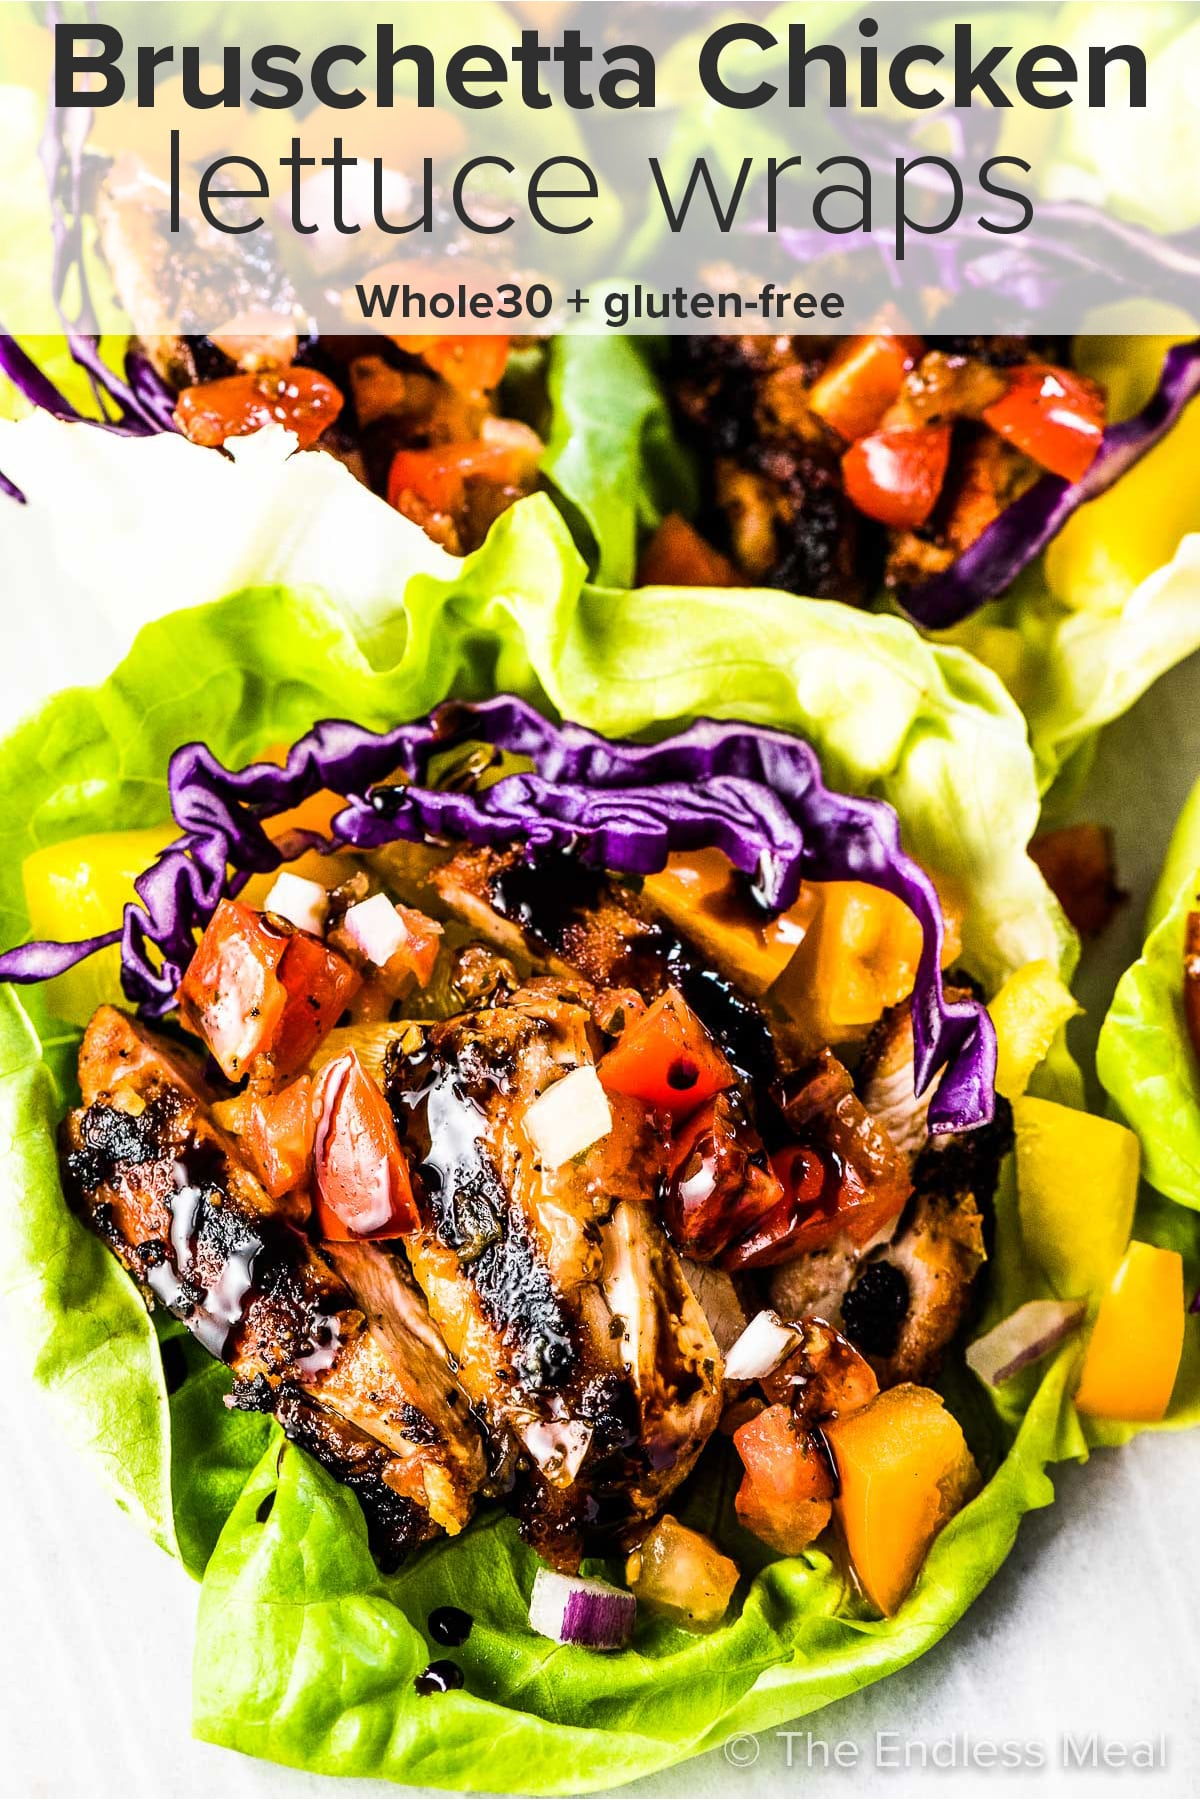 Bruschetta Chicken Lettuce Wraps with the recipe title on top of the picture.